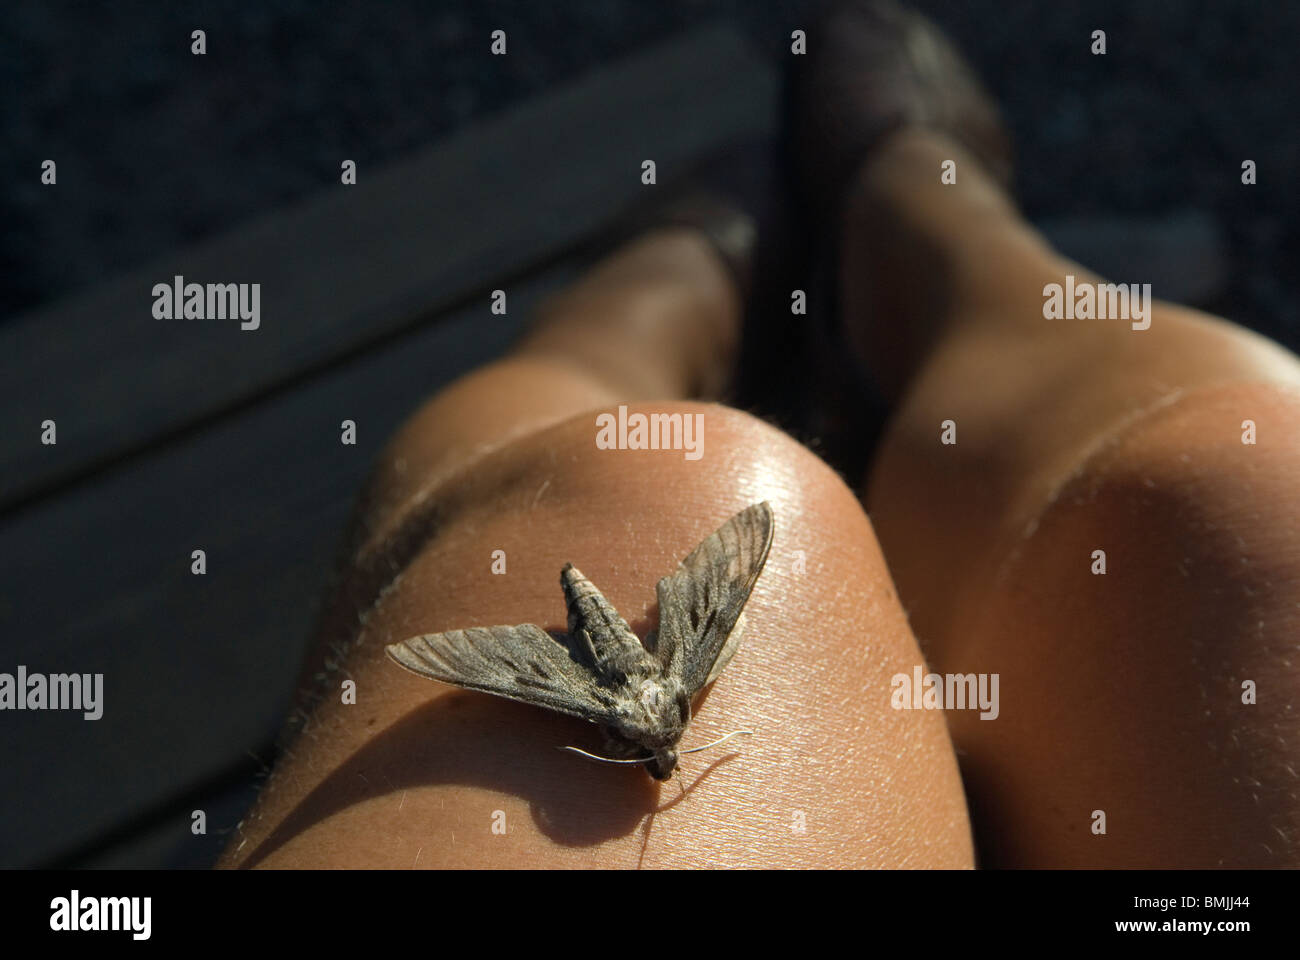 Butterfly on human leg, close-up - Stock Image